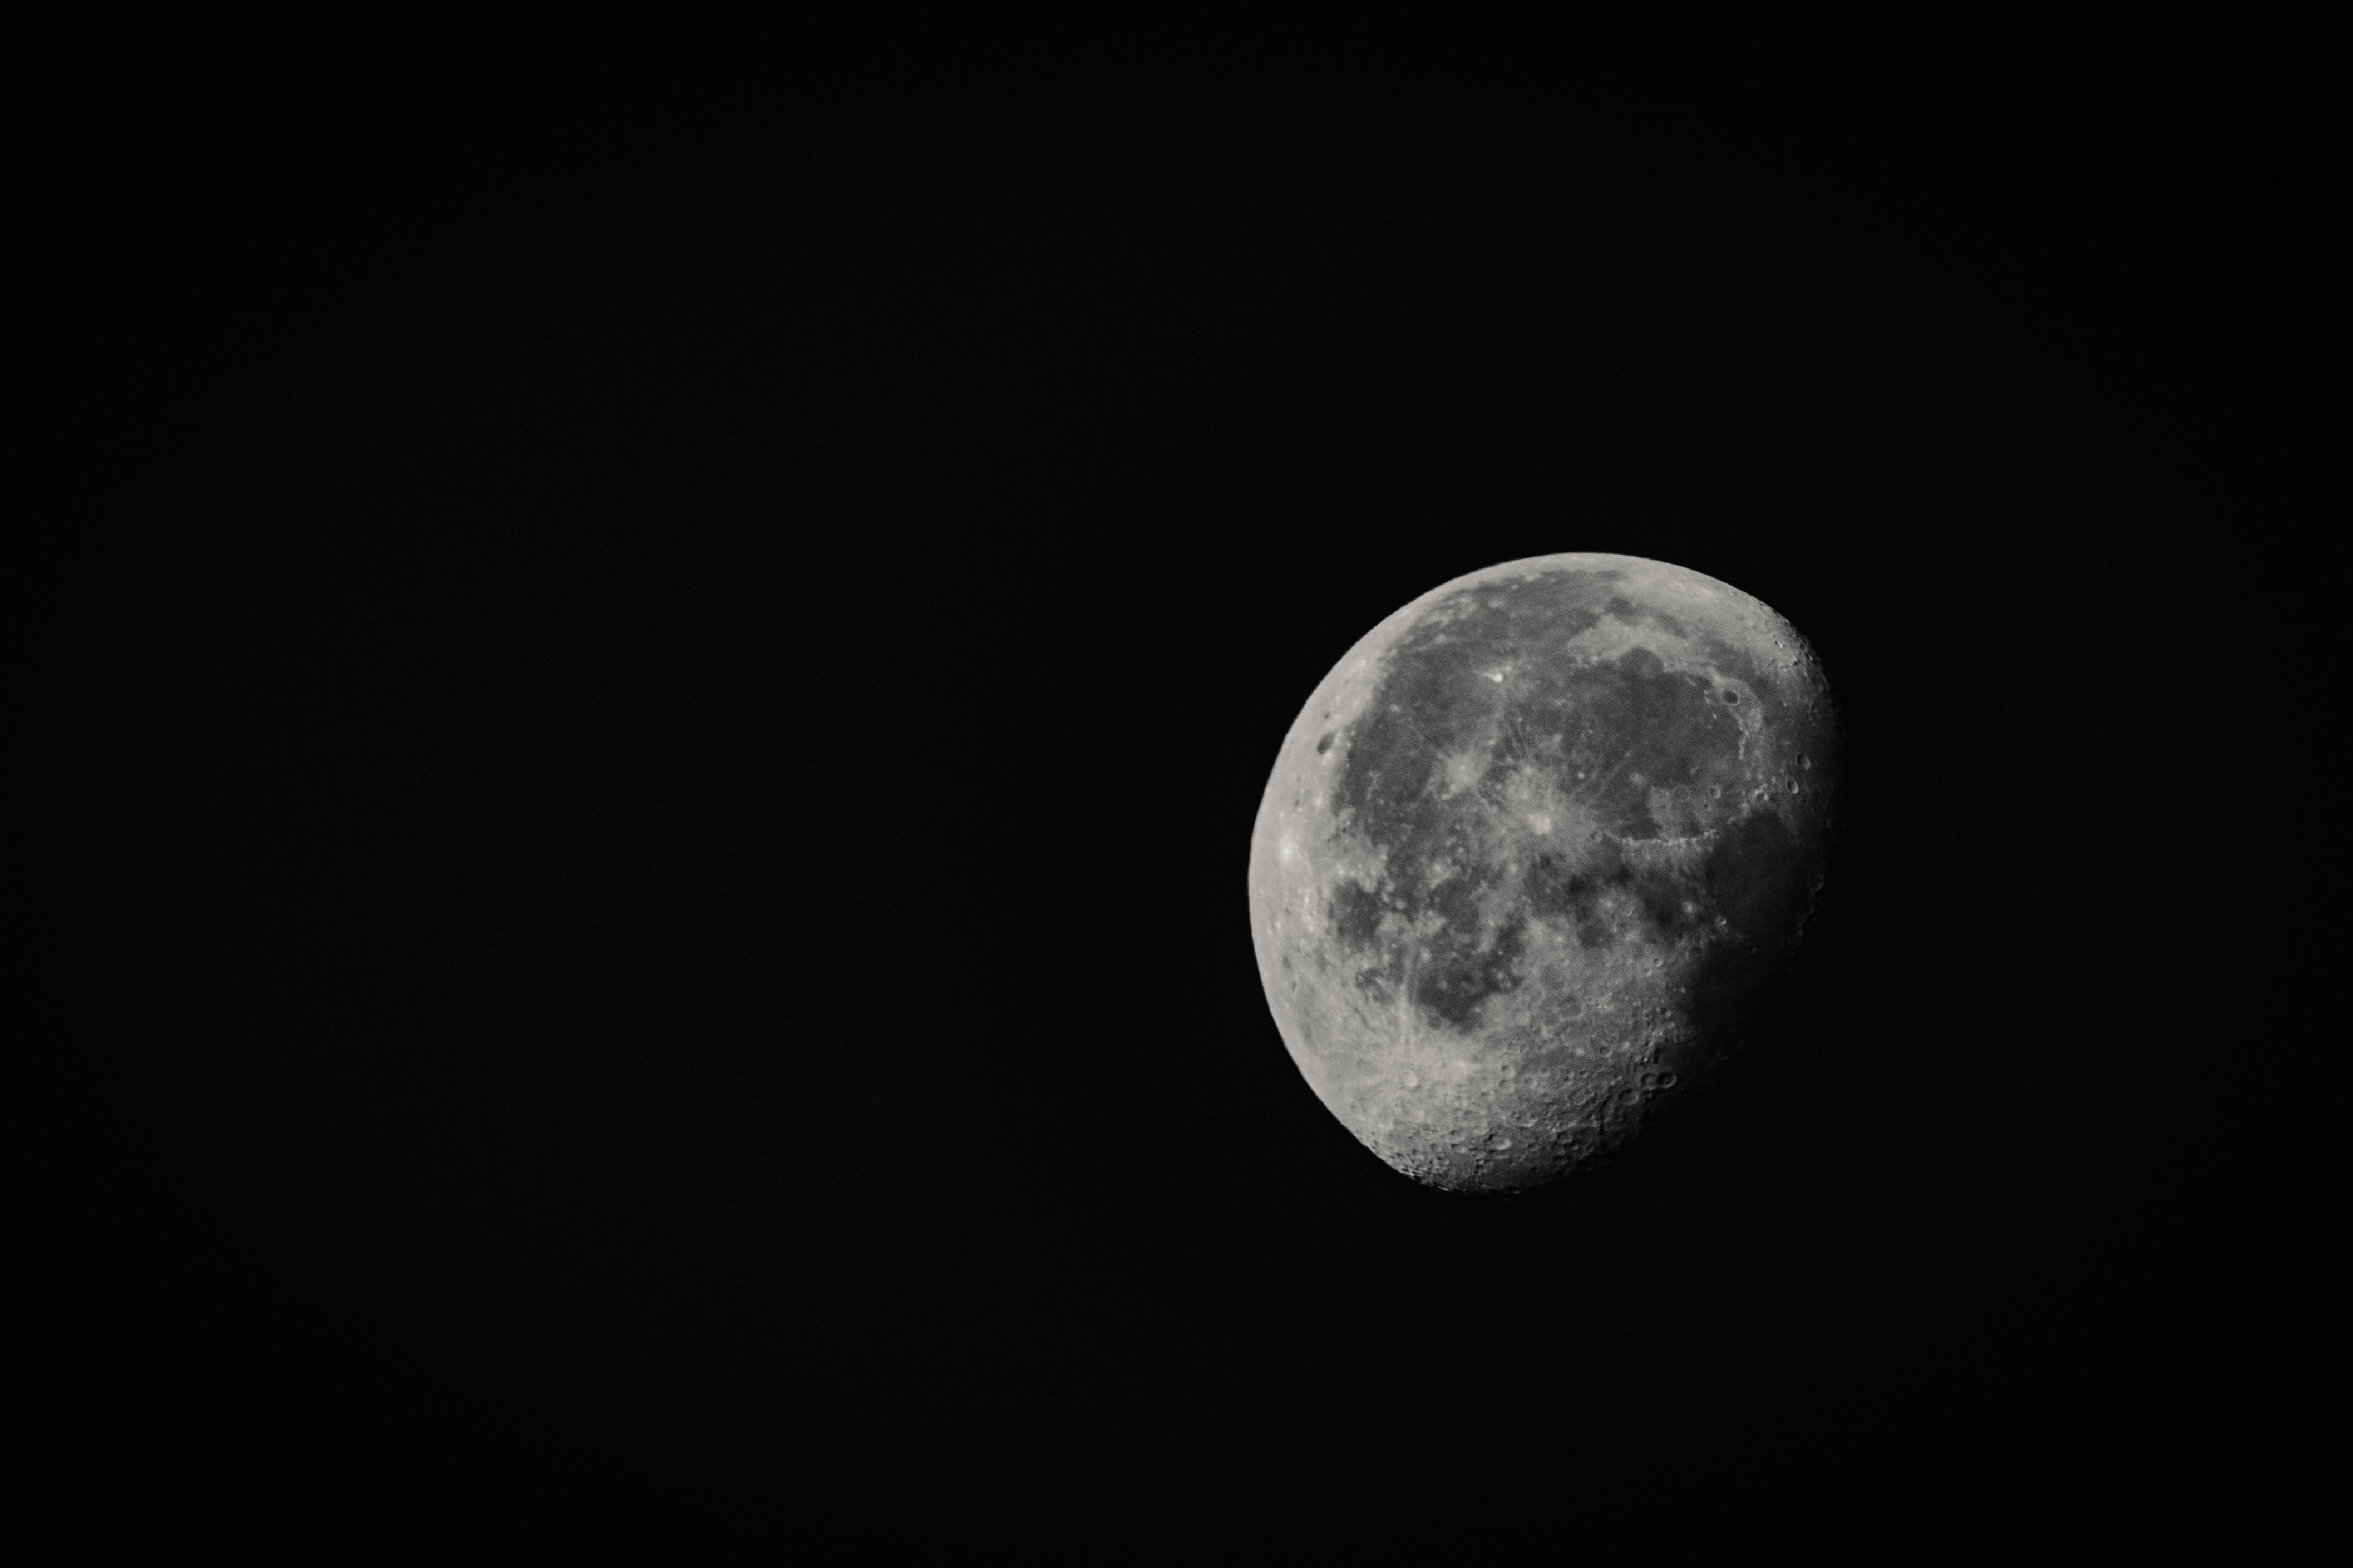 Grayscale Photo of Moon